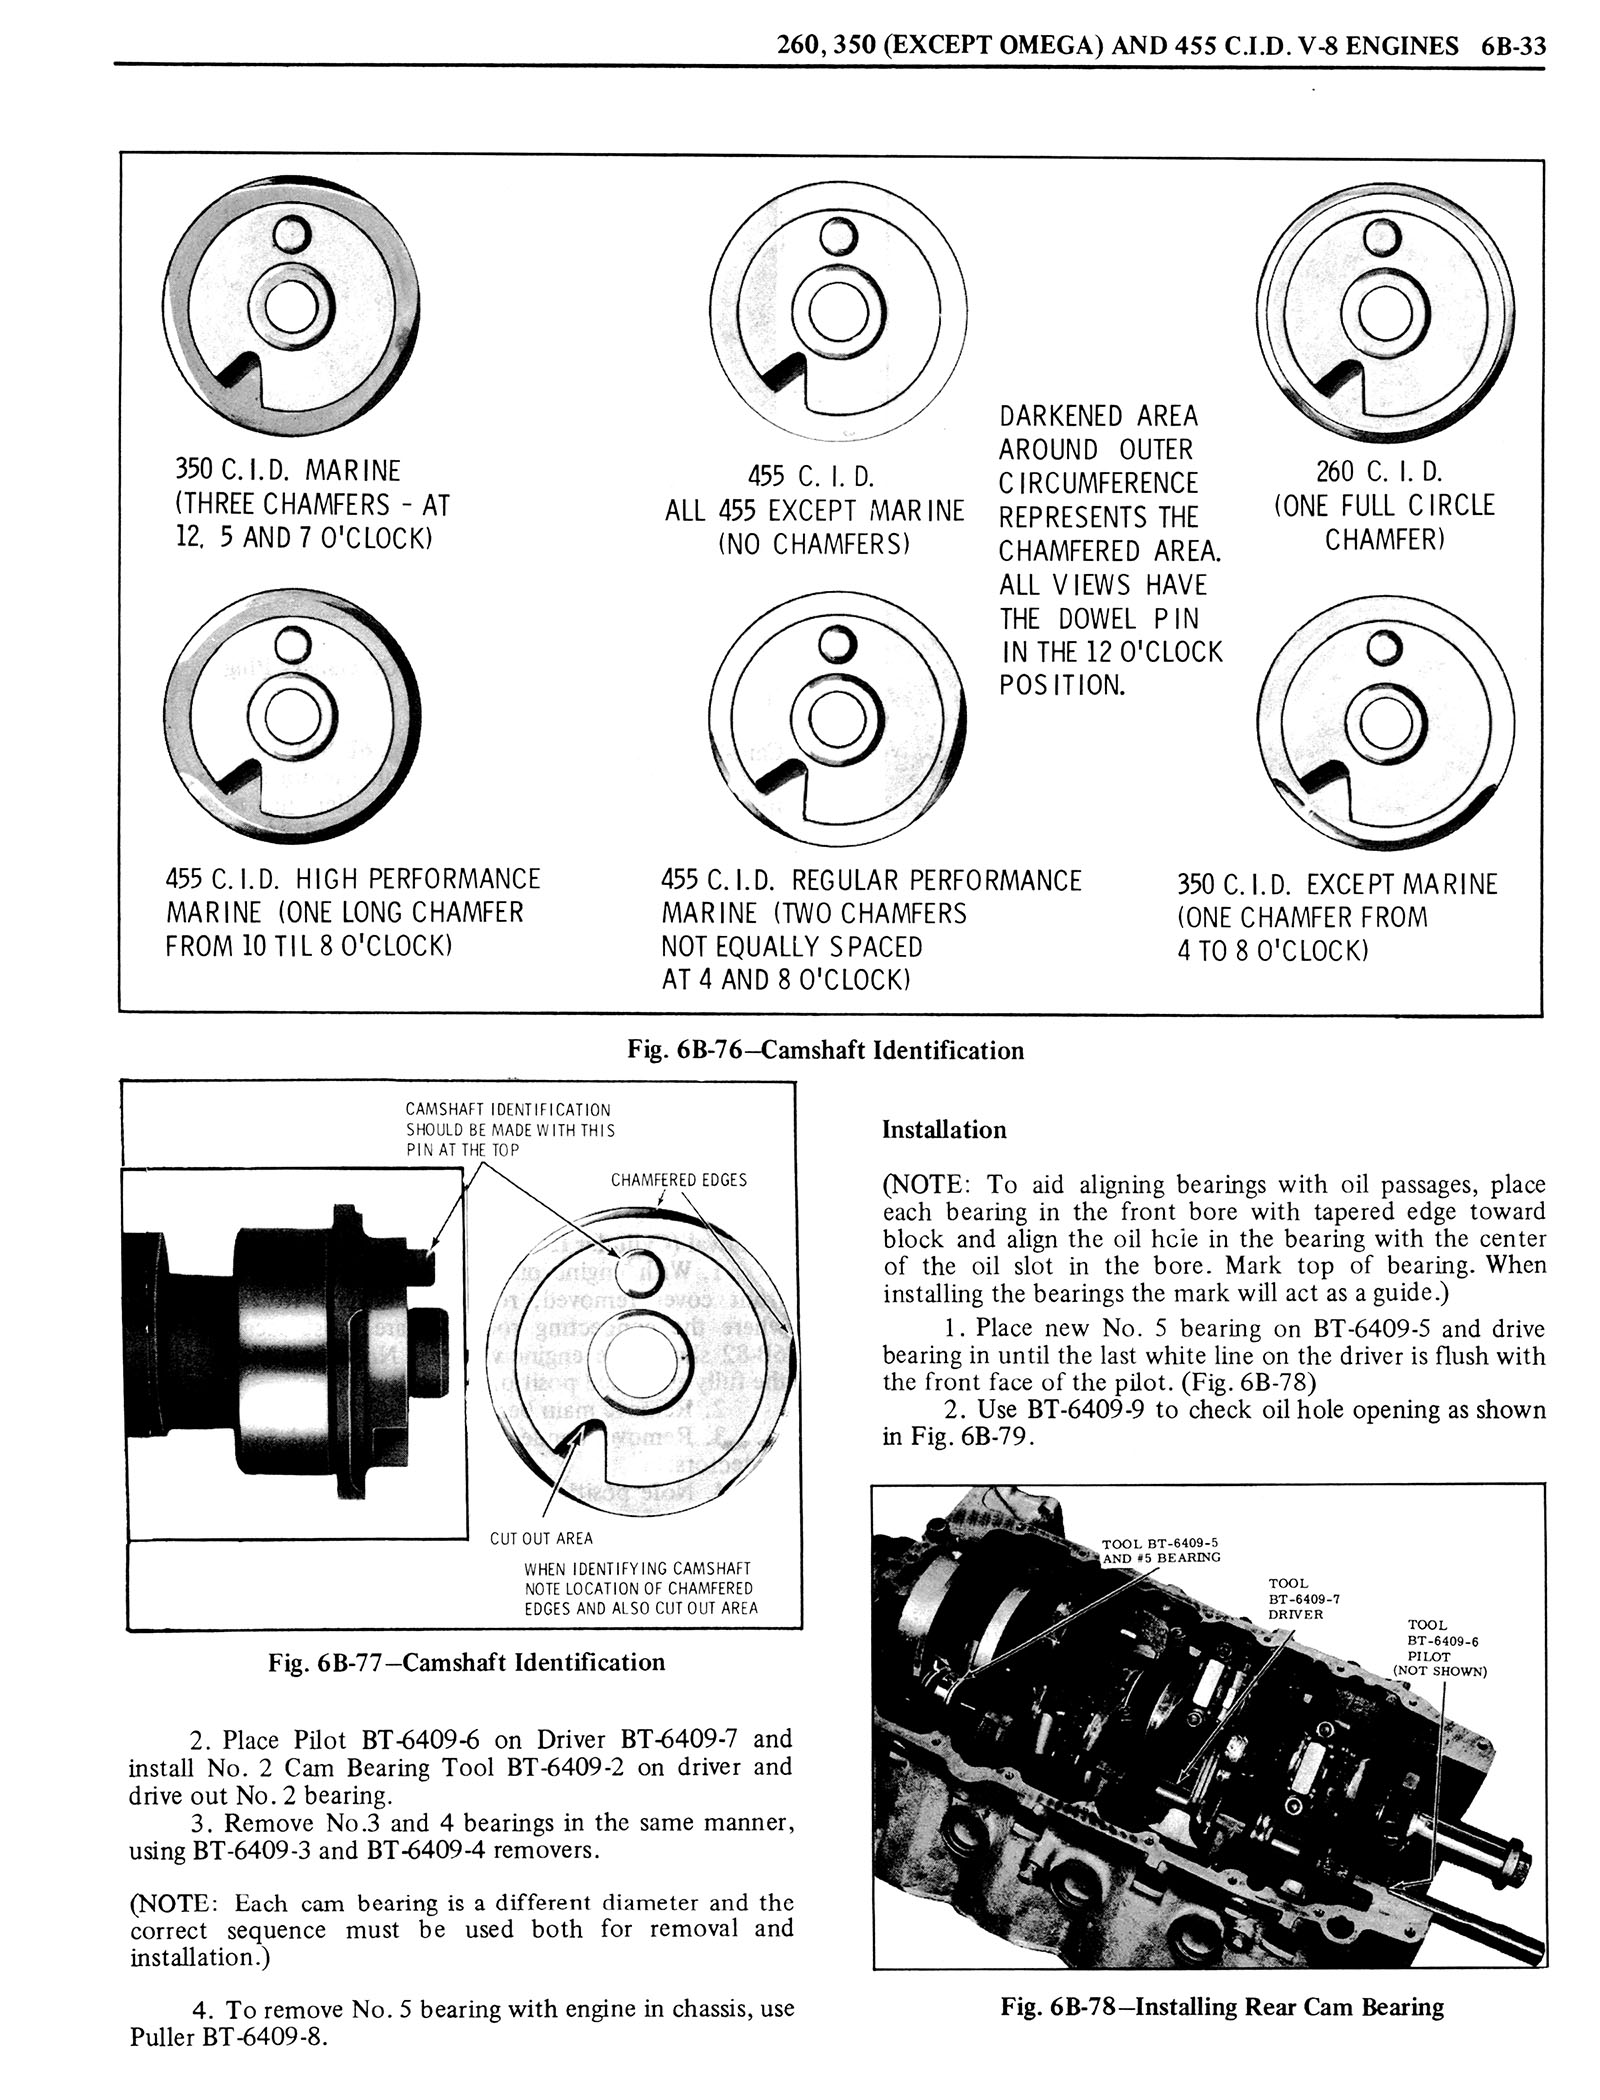 1976 Oldsmobile Service Manual page 452 of 1390